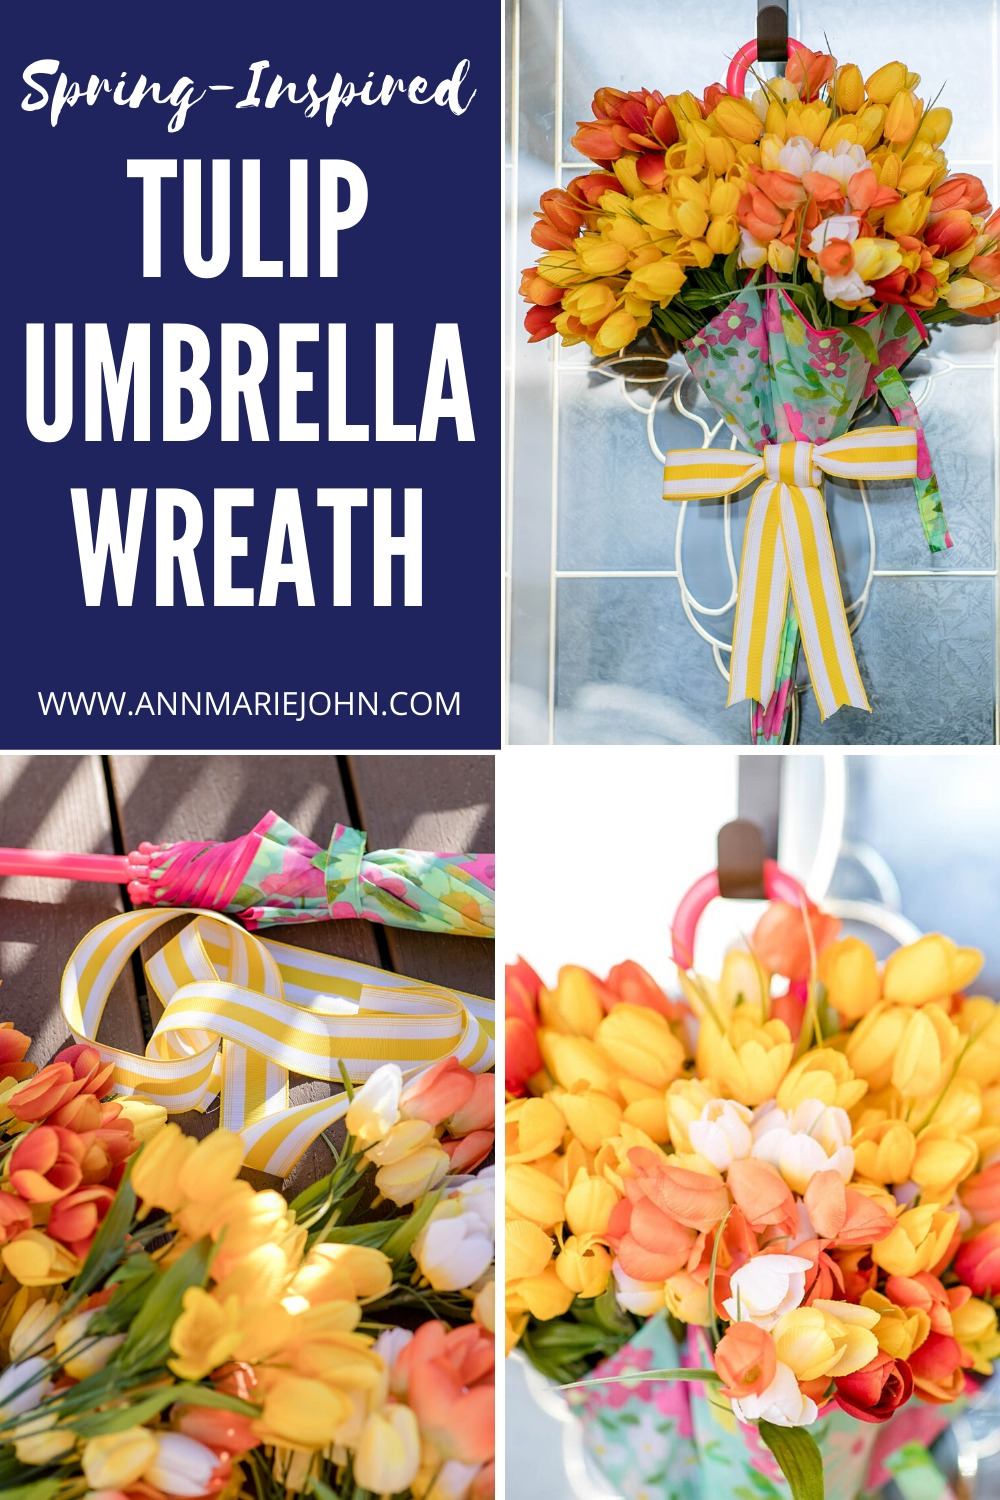 Tulip Umbrella Wreath Pinterest Image